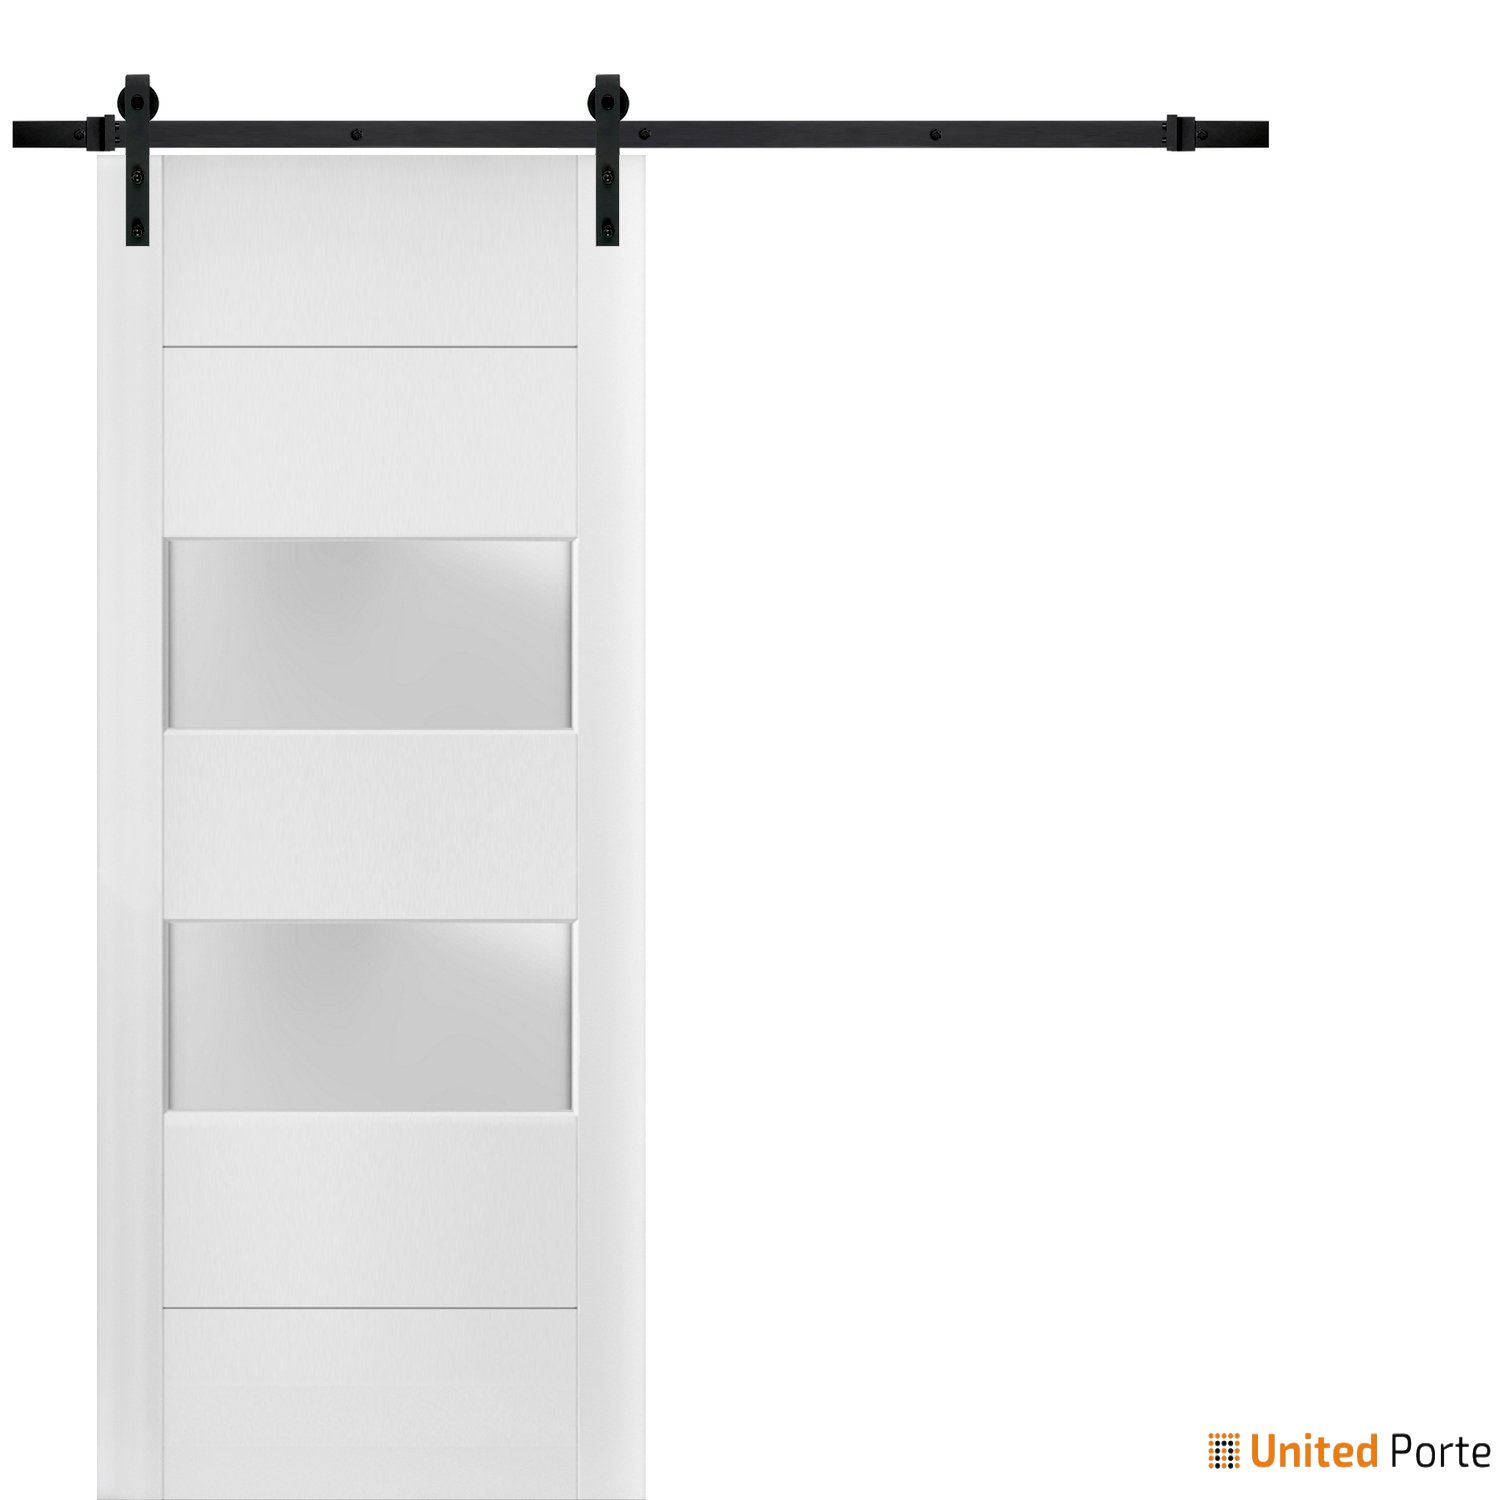 Lucia 4010 White Silk Sturdy Barn Door Frosted Glass 2 lites with Black Hardware | Solid Panel Interior Barn Doors